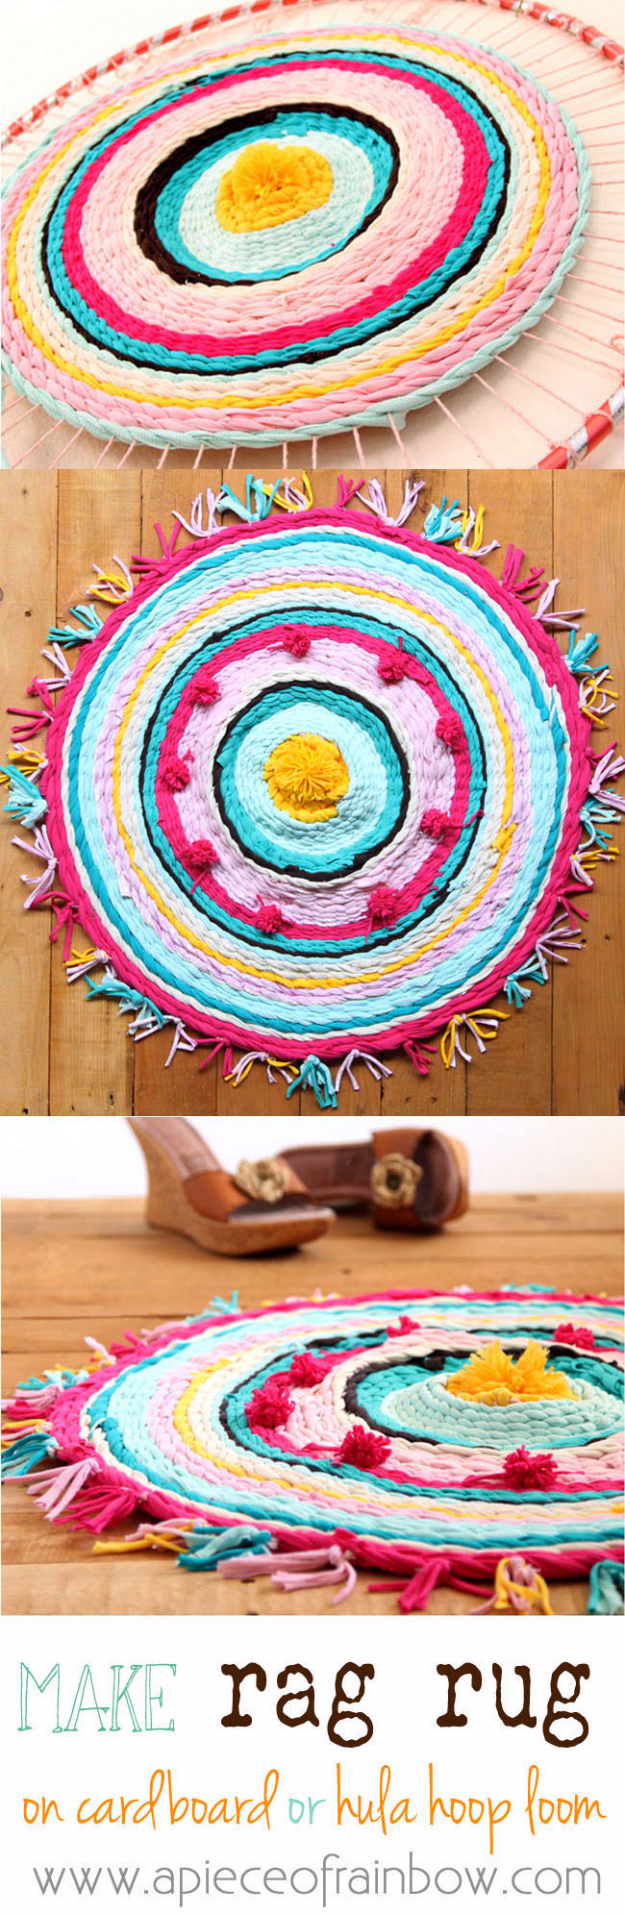 Easy Diy Rugs And Handmade Rug Making Project Ideas Rag From Old T